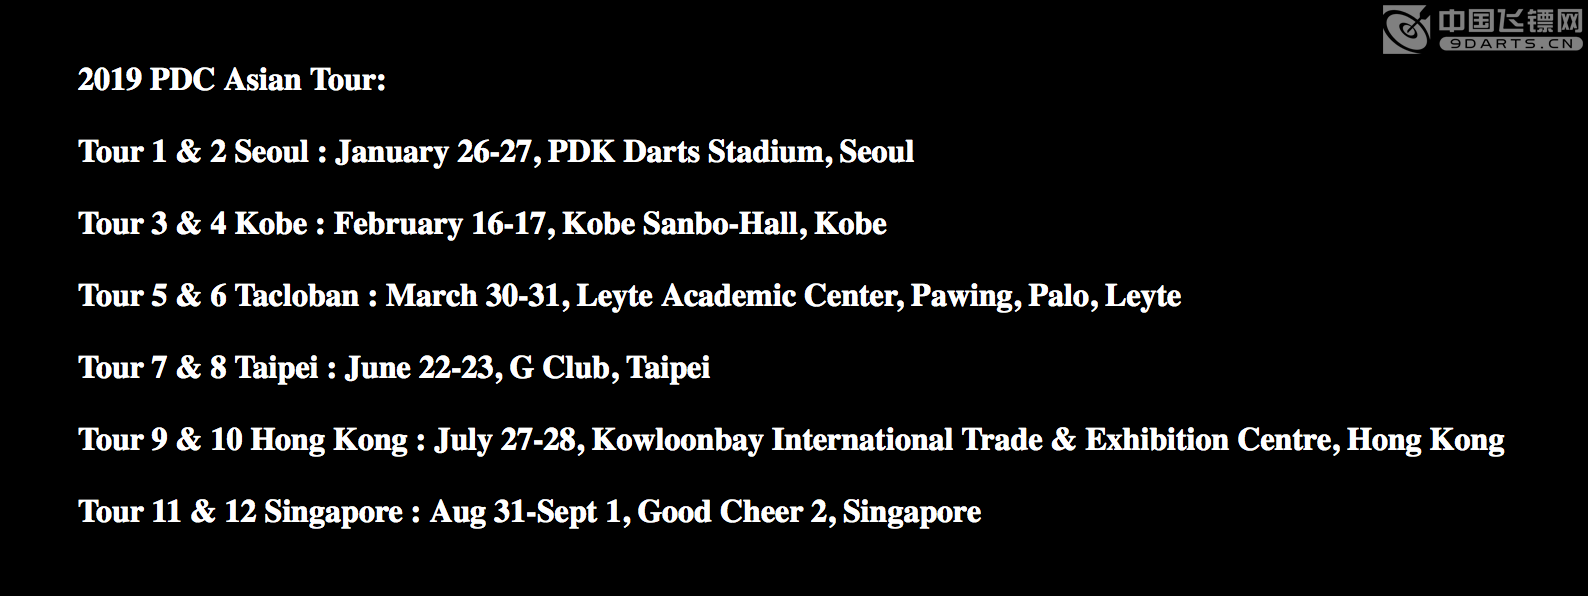 2019 PDC Asian Tour.png